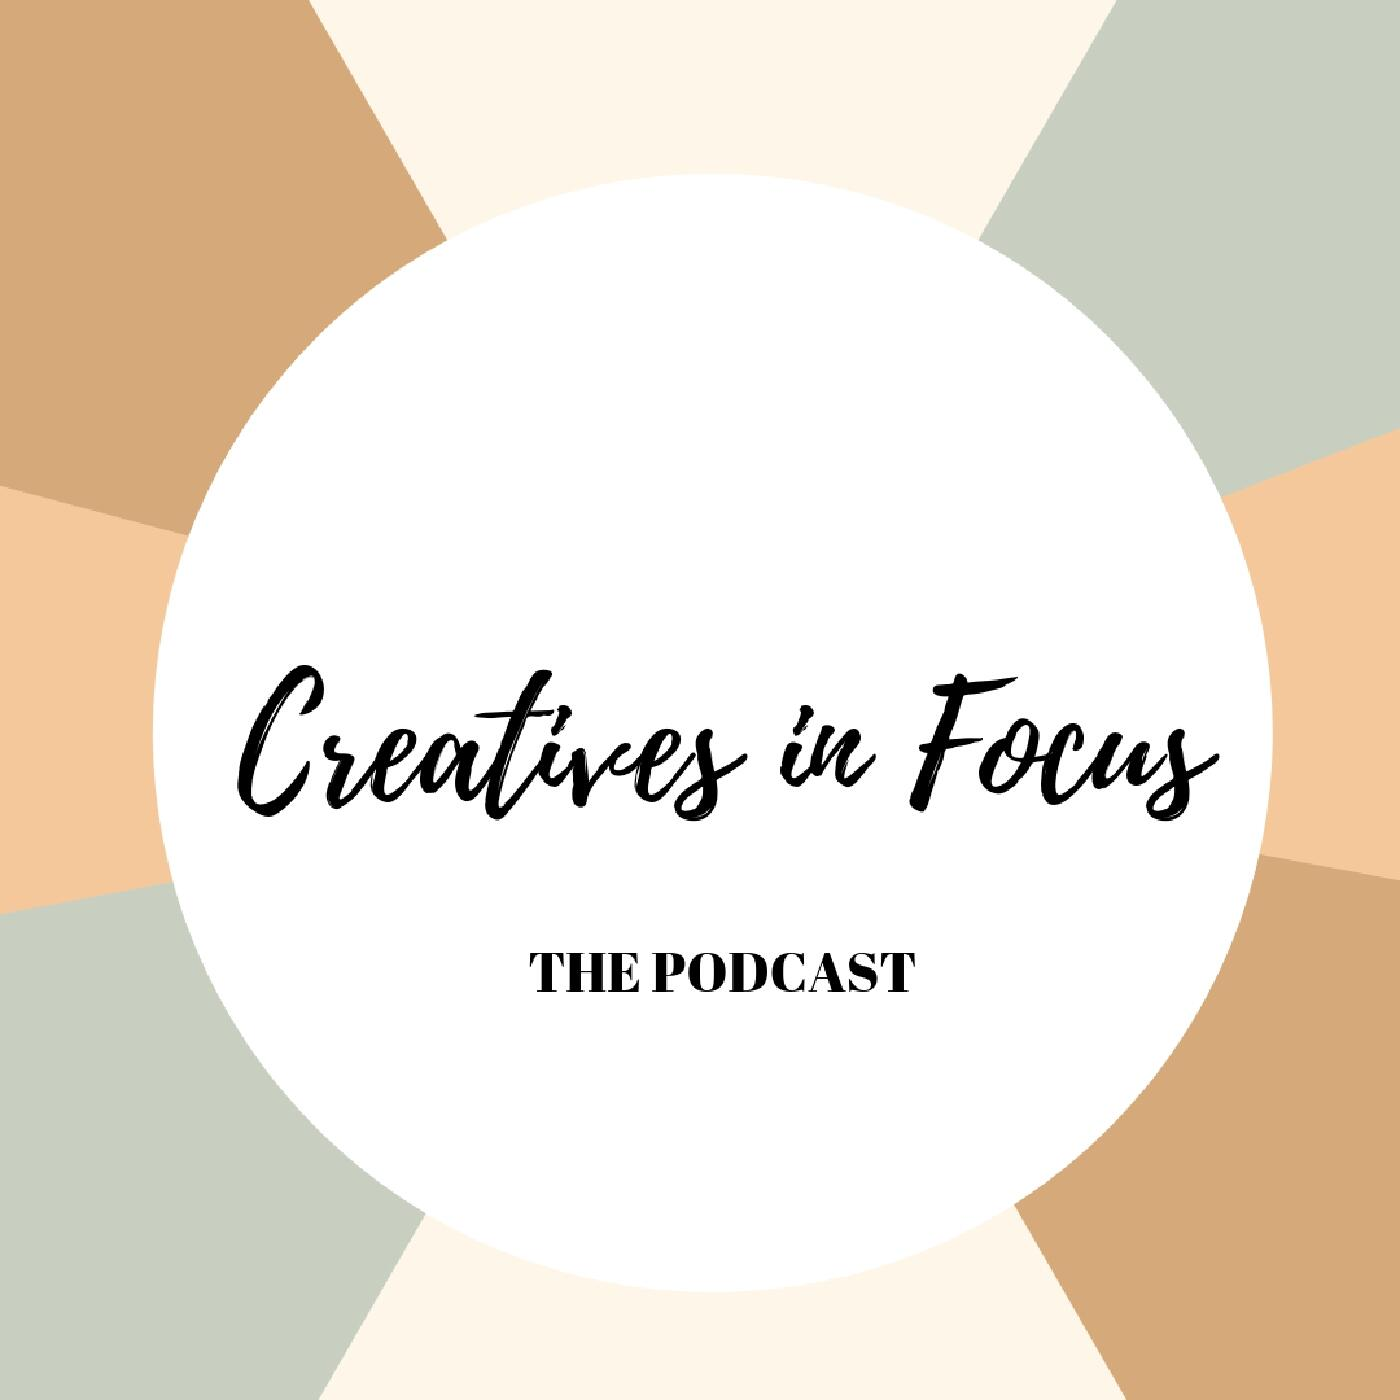 Creatives in Focus: The podcast